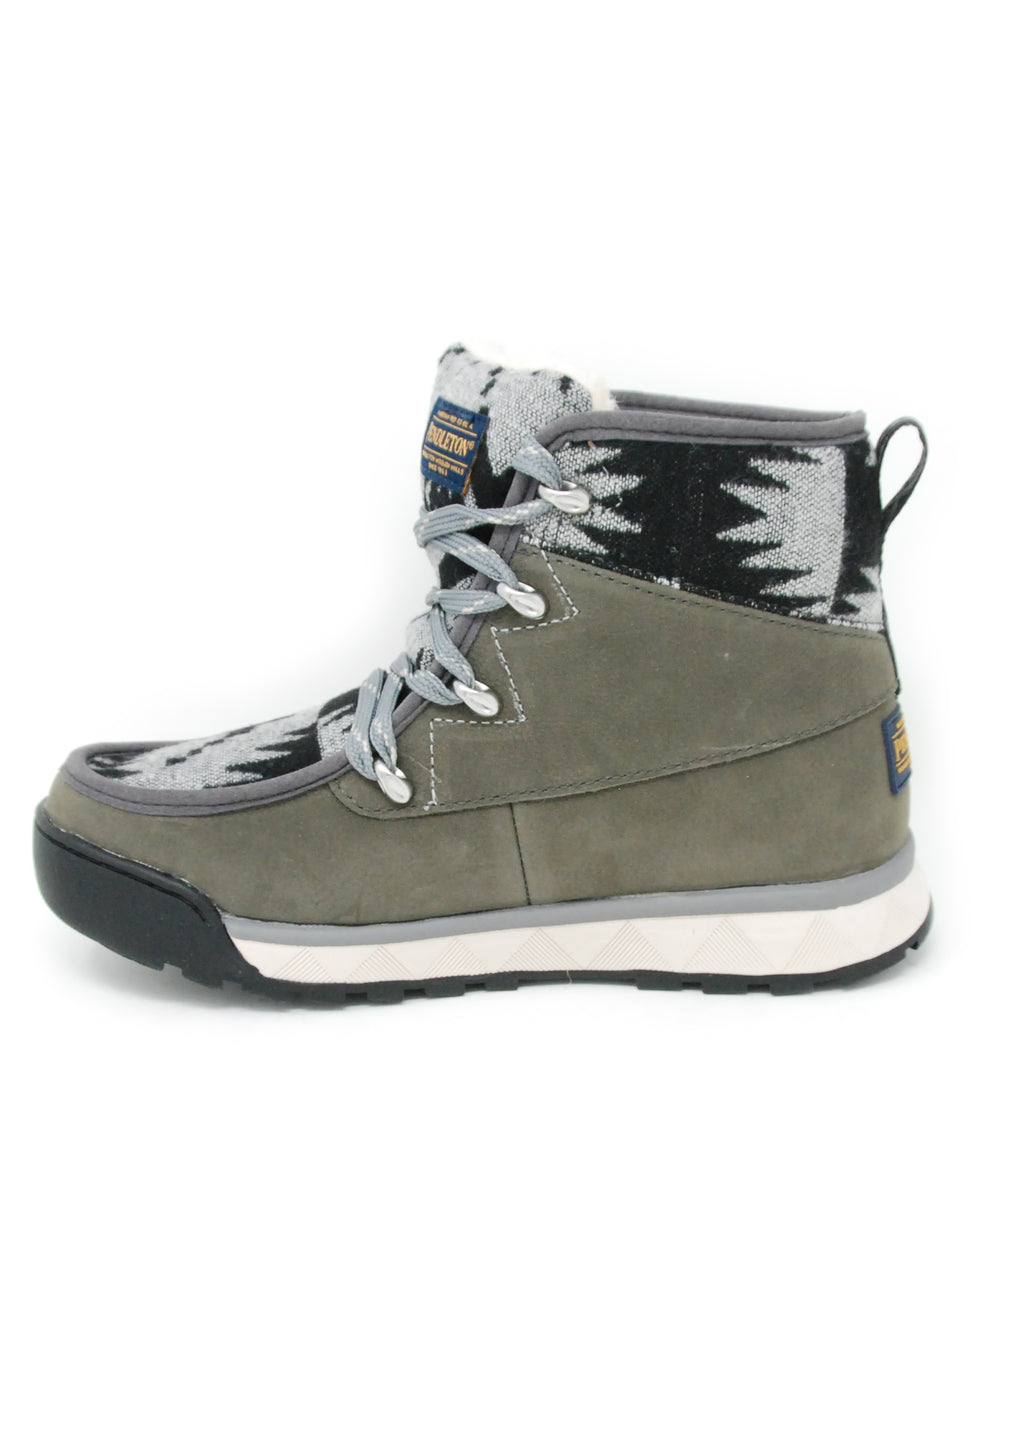 Pendleton Torngat Spider Rock Trail Boot